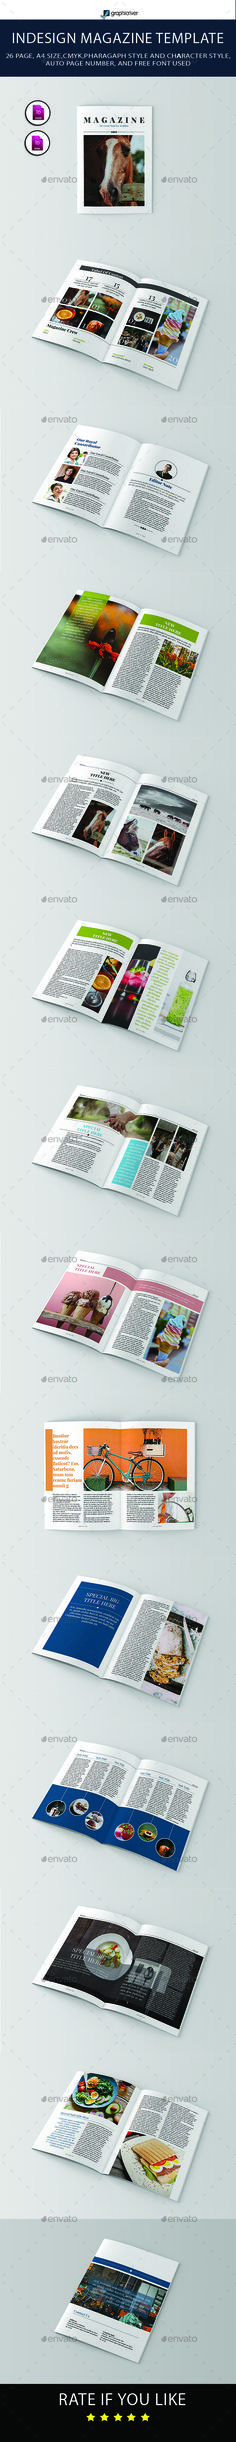 Magazine Template — InDesign INDD #editorial #design • Available here → https://graphicriver.net/item/magazine-template/19988499?ref=pxcr